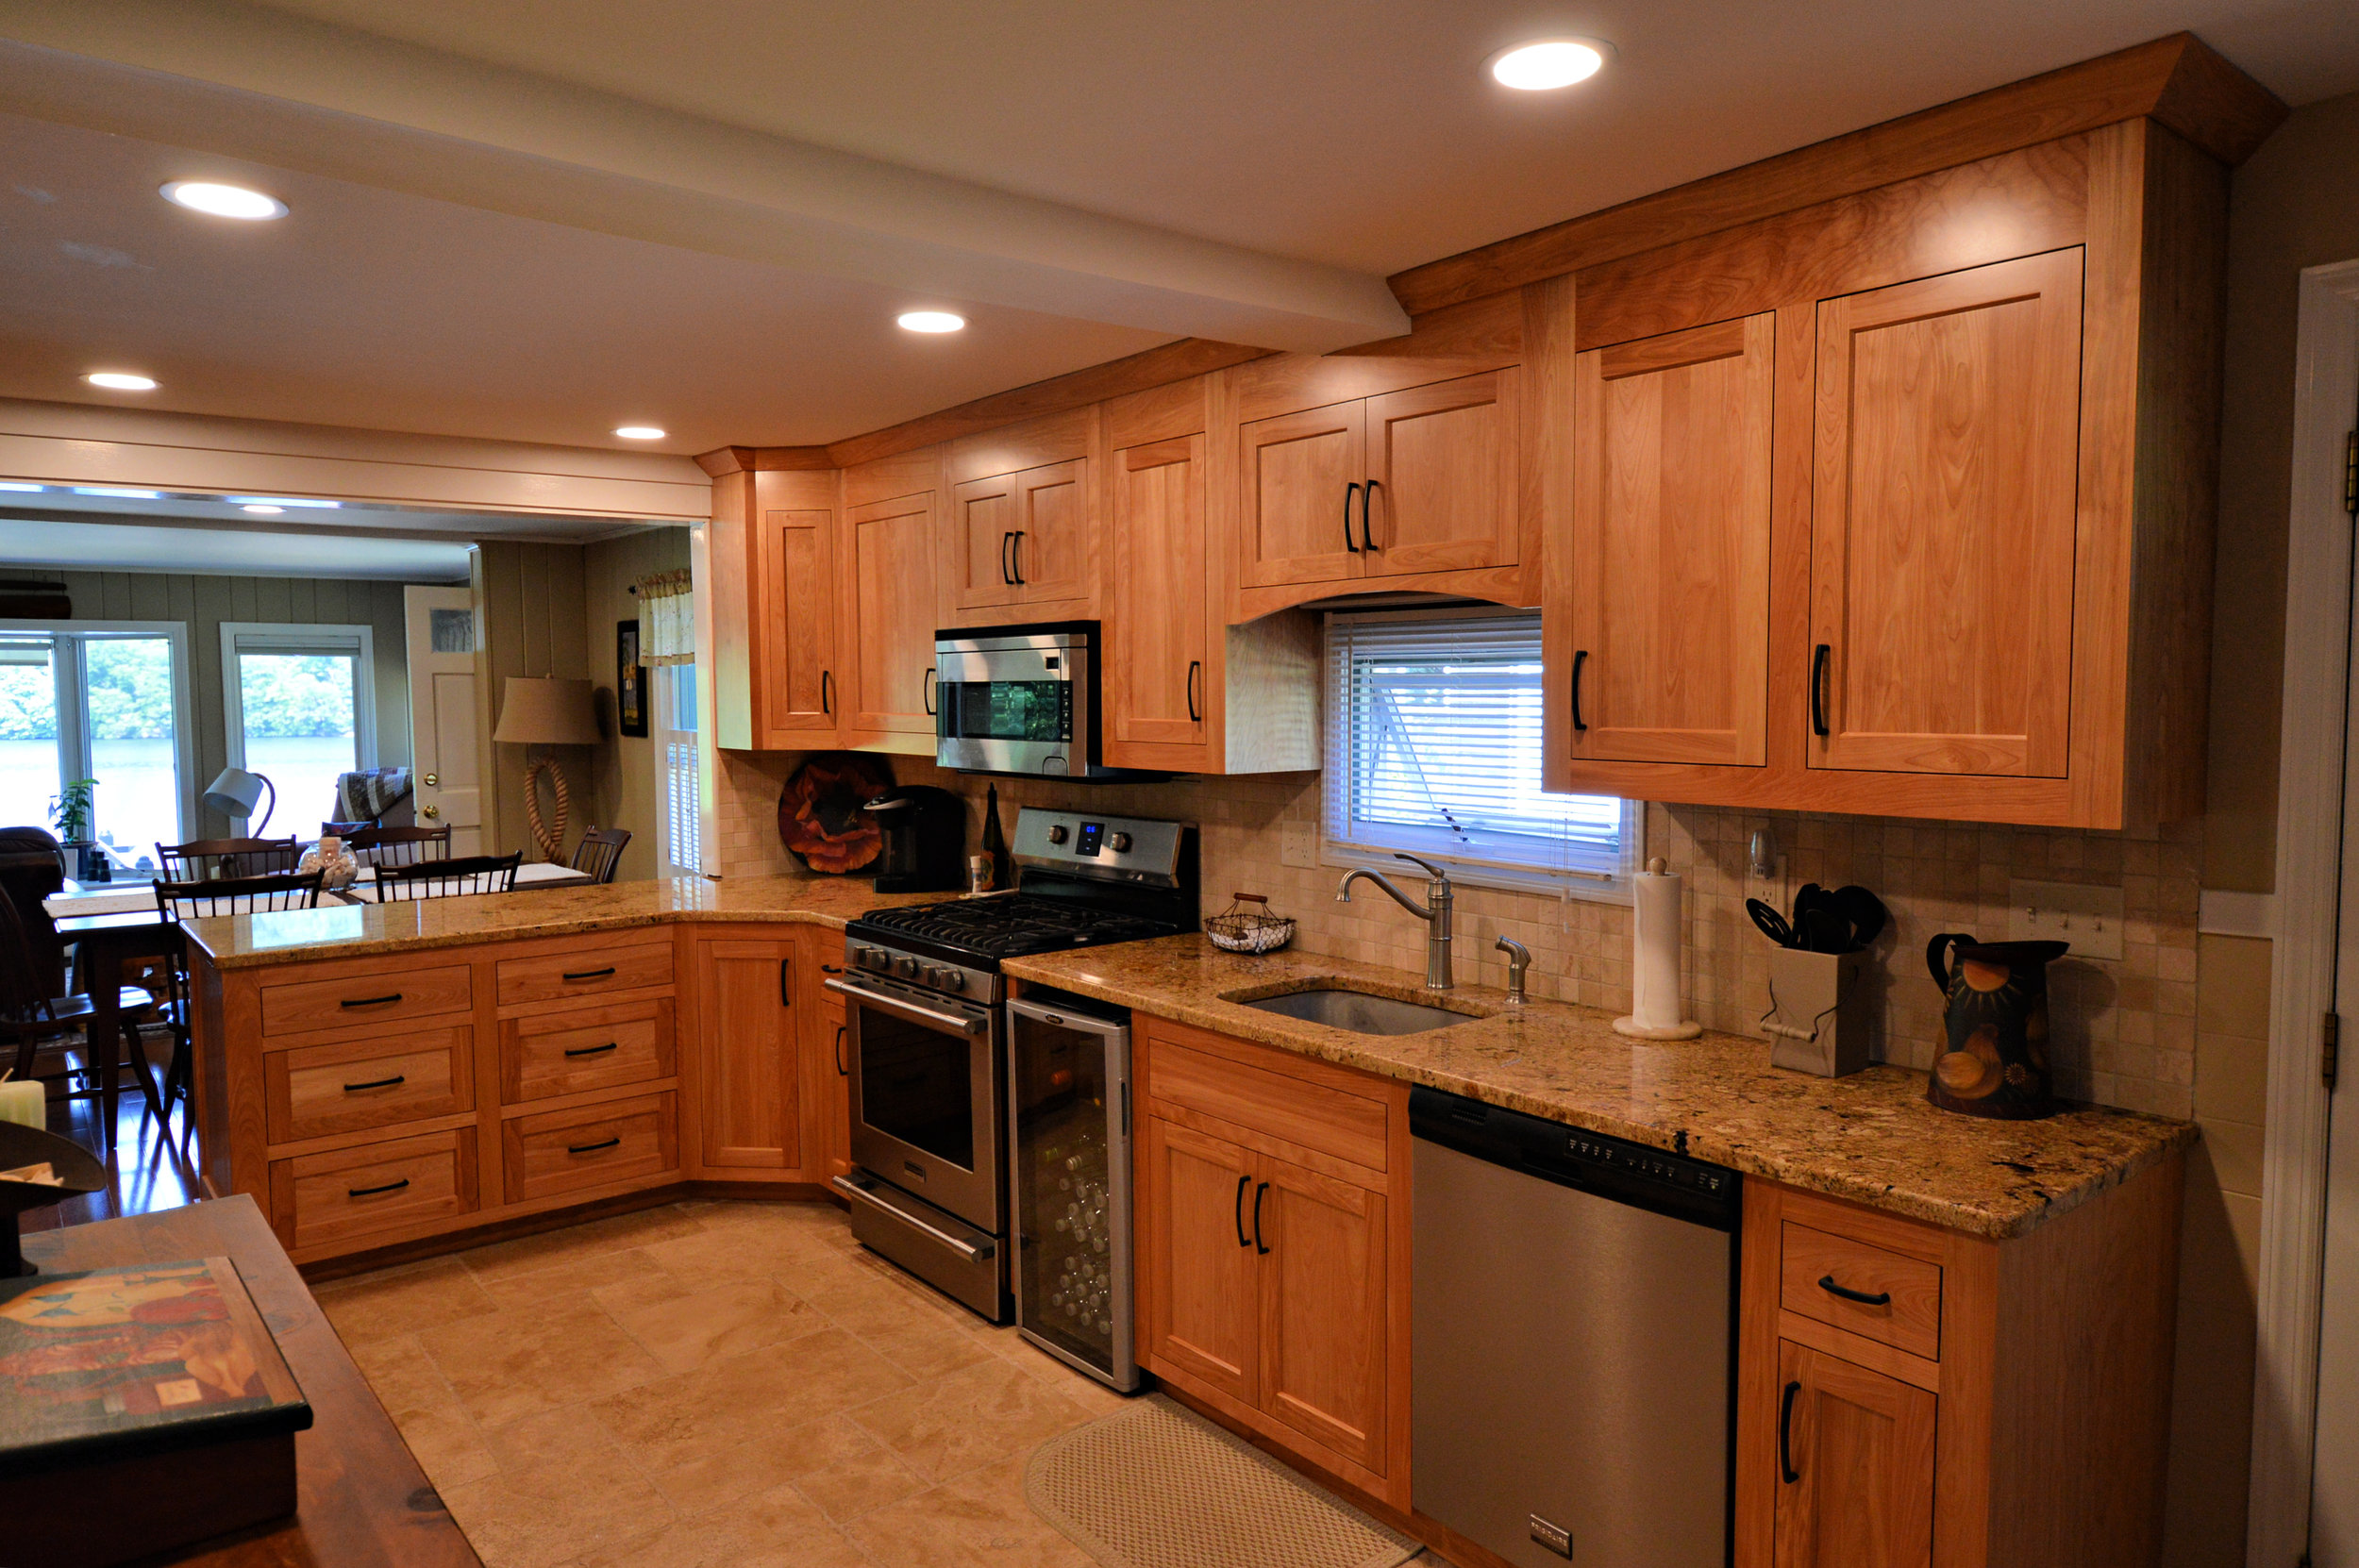 Danbury CT Custom Inset Red Birch Cabinets.jpg